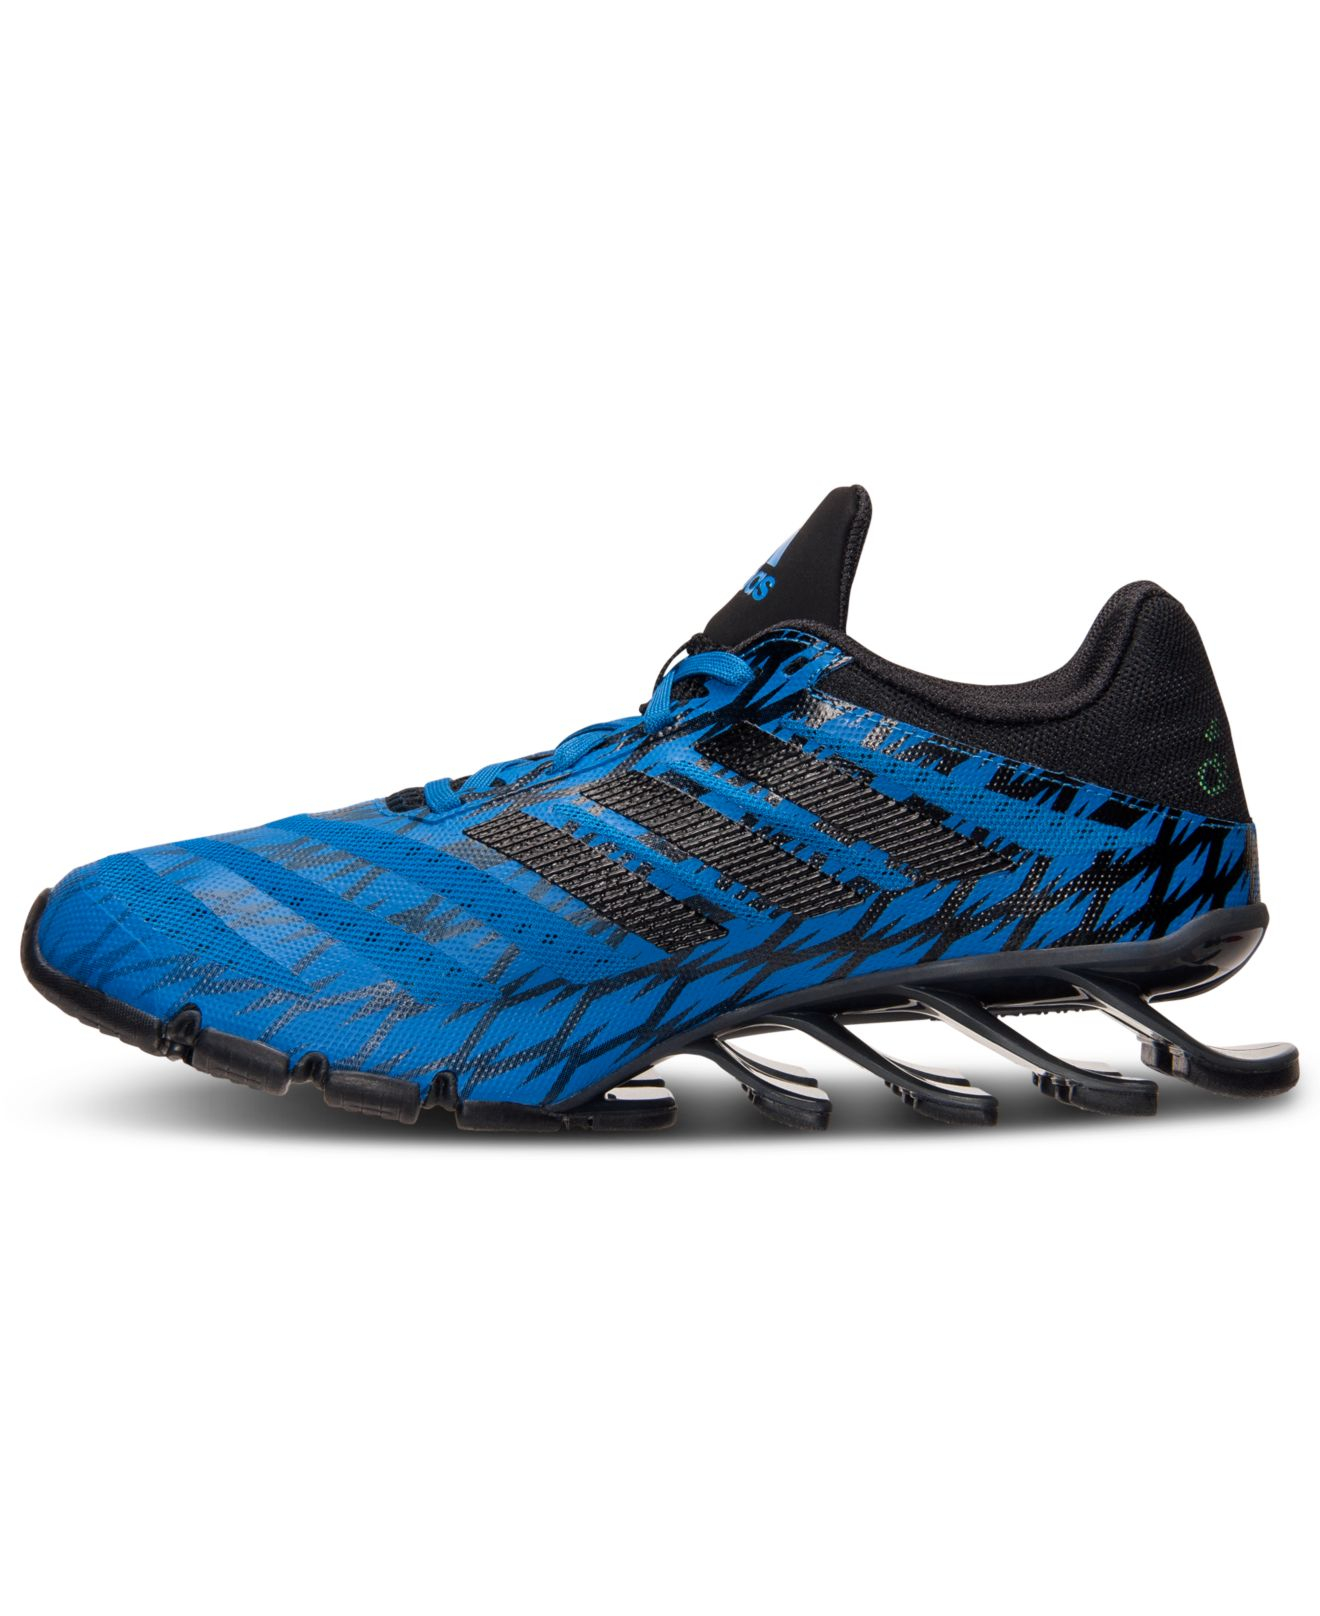 wholesale dealer eaac8 e4a0a adidas springblade ignite blue black